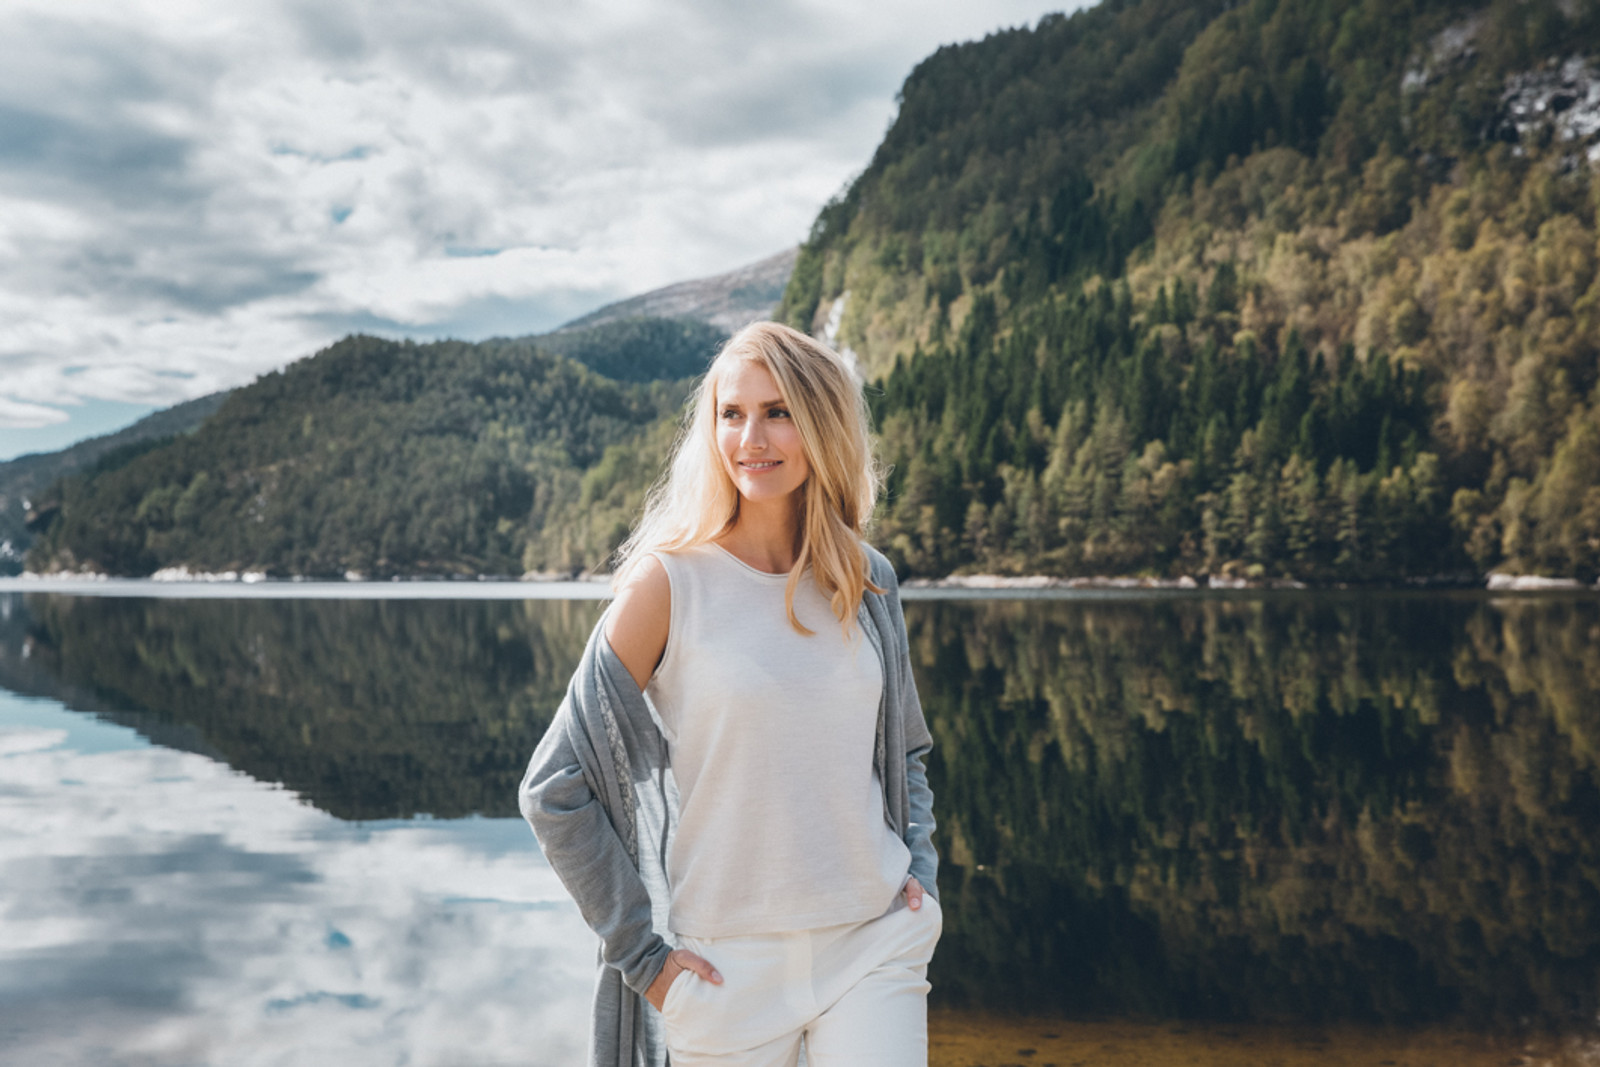 Woman standing by lakeshore wearing Dale of Norway's Stjerne Ladies Top in Off White Mel, 93701-A, under a Nora ladies jacket in Grau Vig/Off White, 83331-T